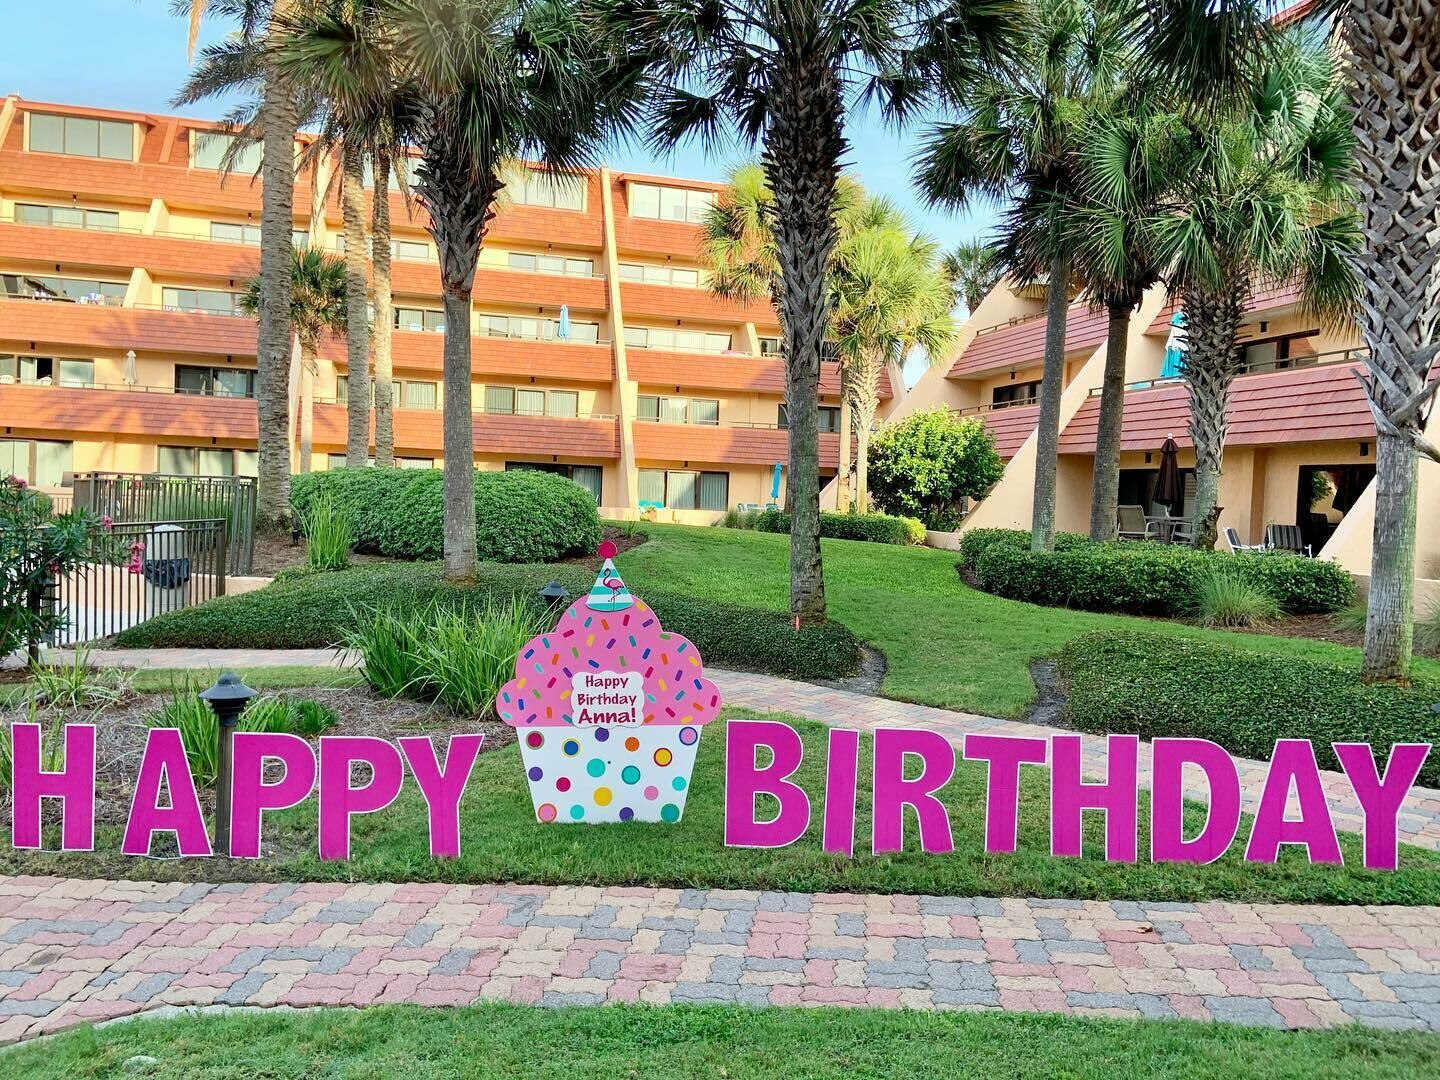 Happy Birthday Lawn Letters